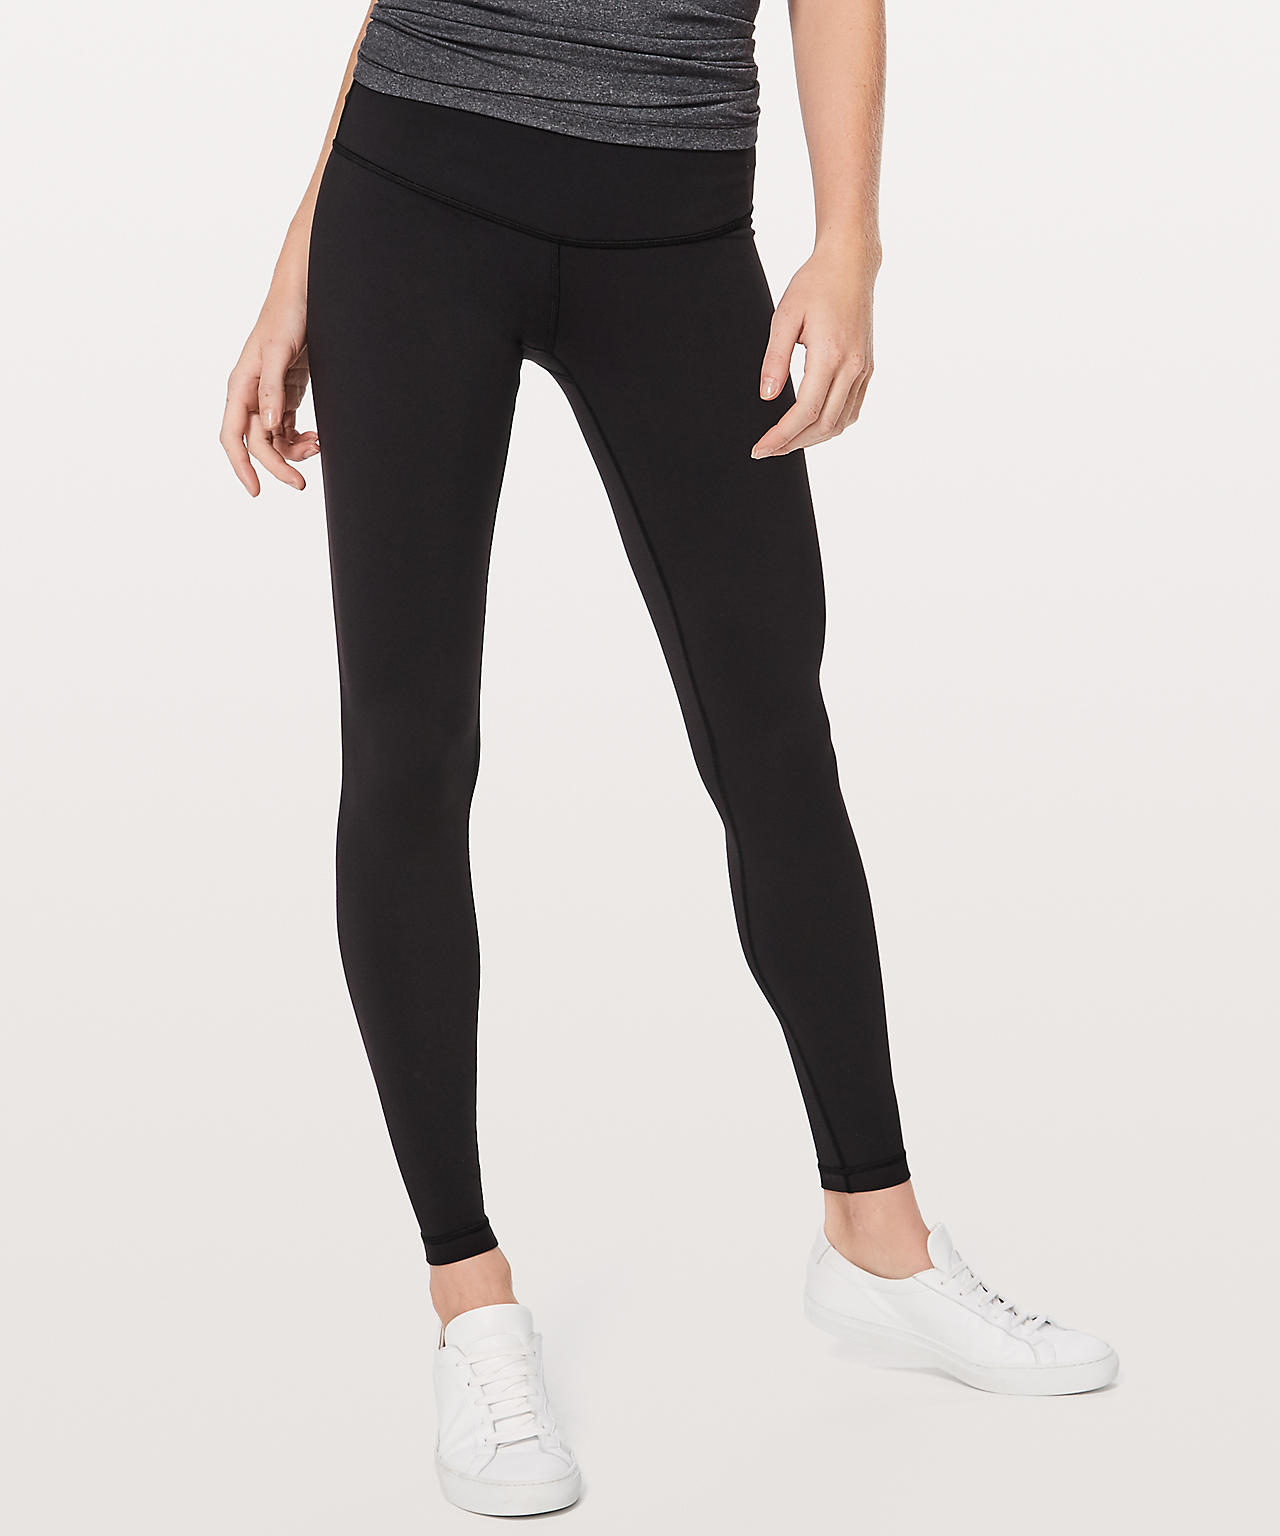 lululemon leggings .jpg